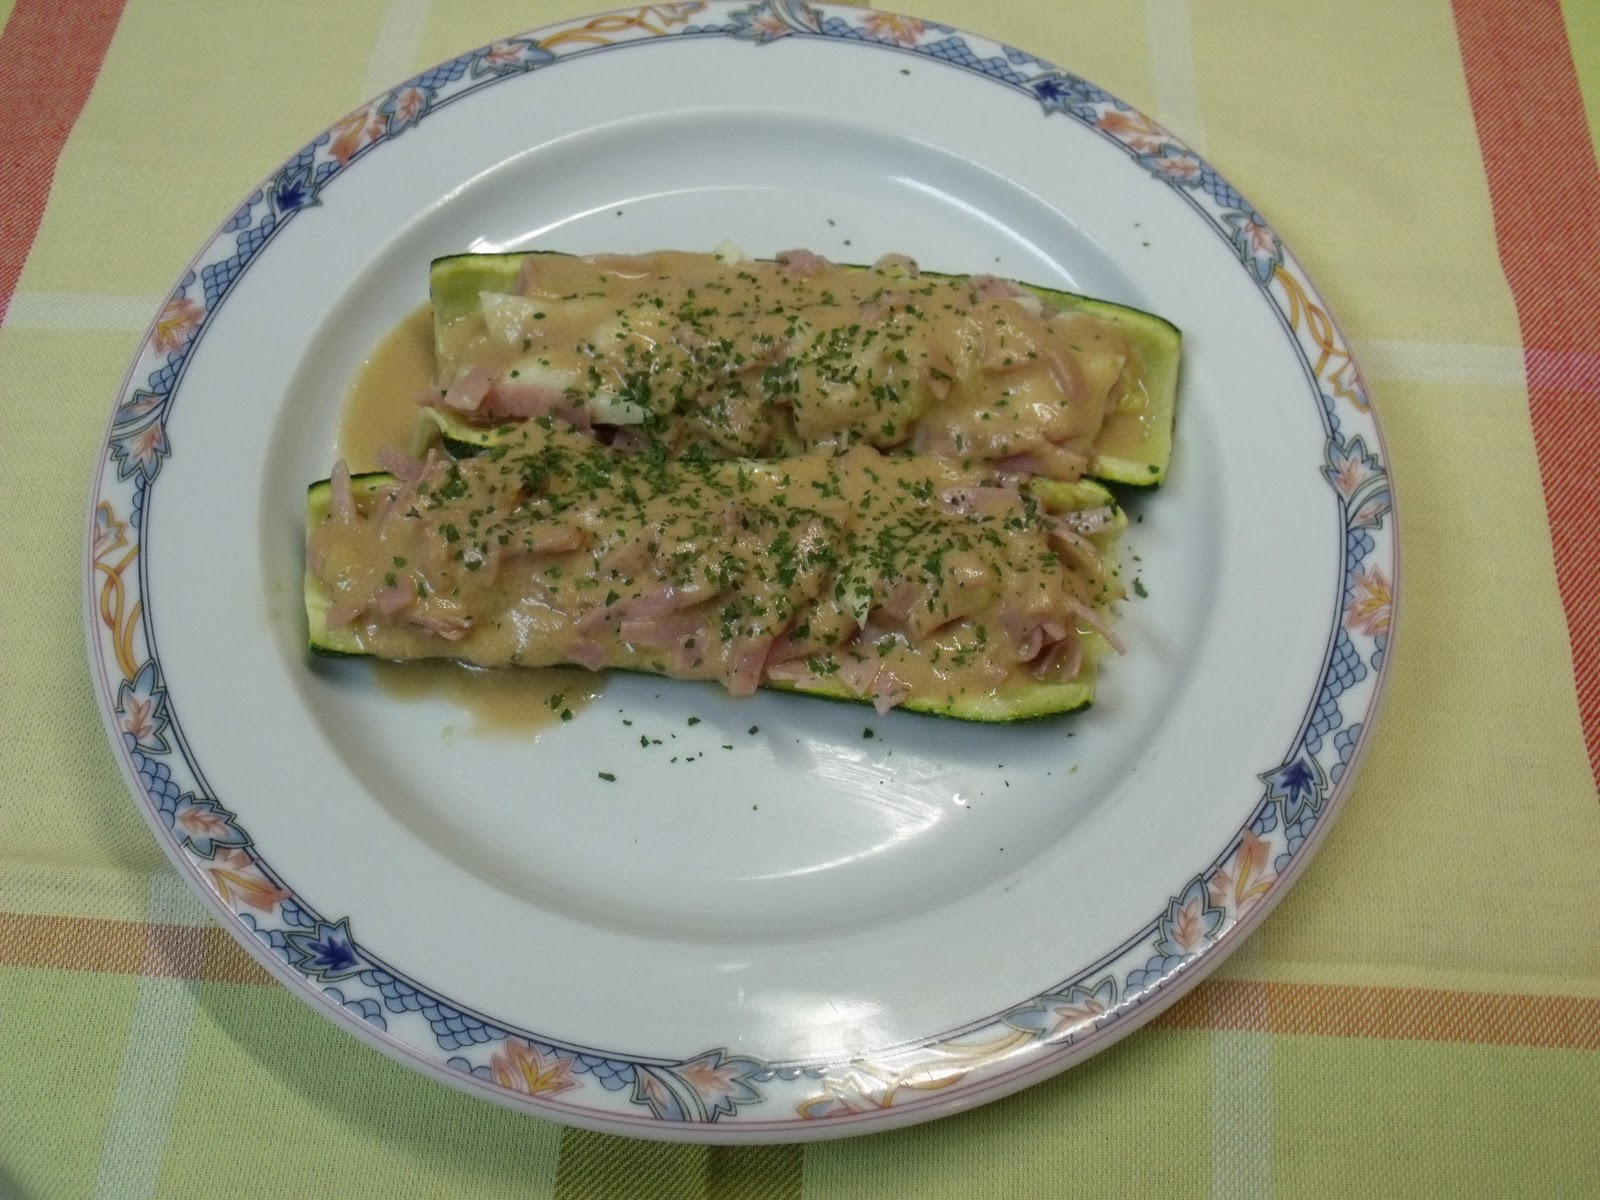 Ver Recetas De Cocina Faciles Y Economicas The Little Kitchen Of Silvia Calabacines Rellenos